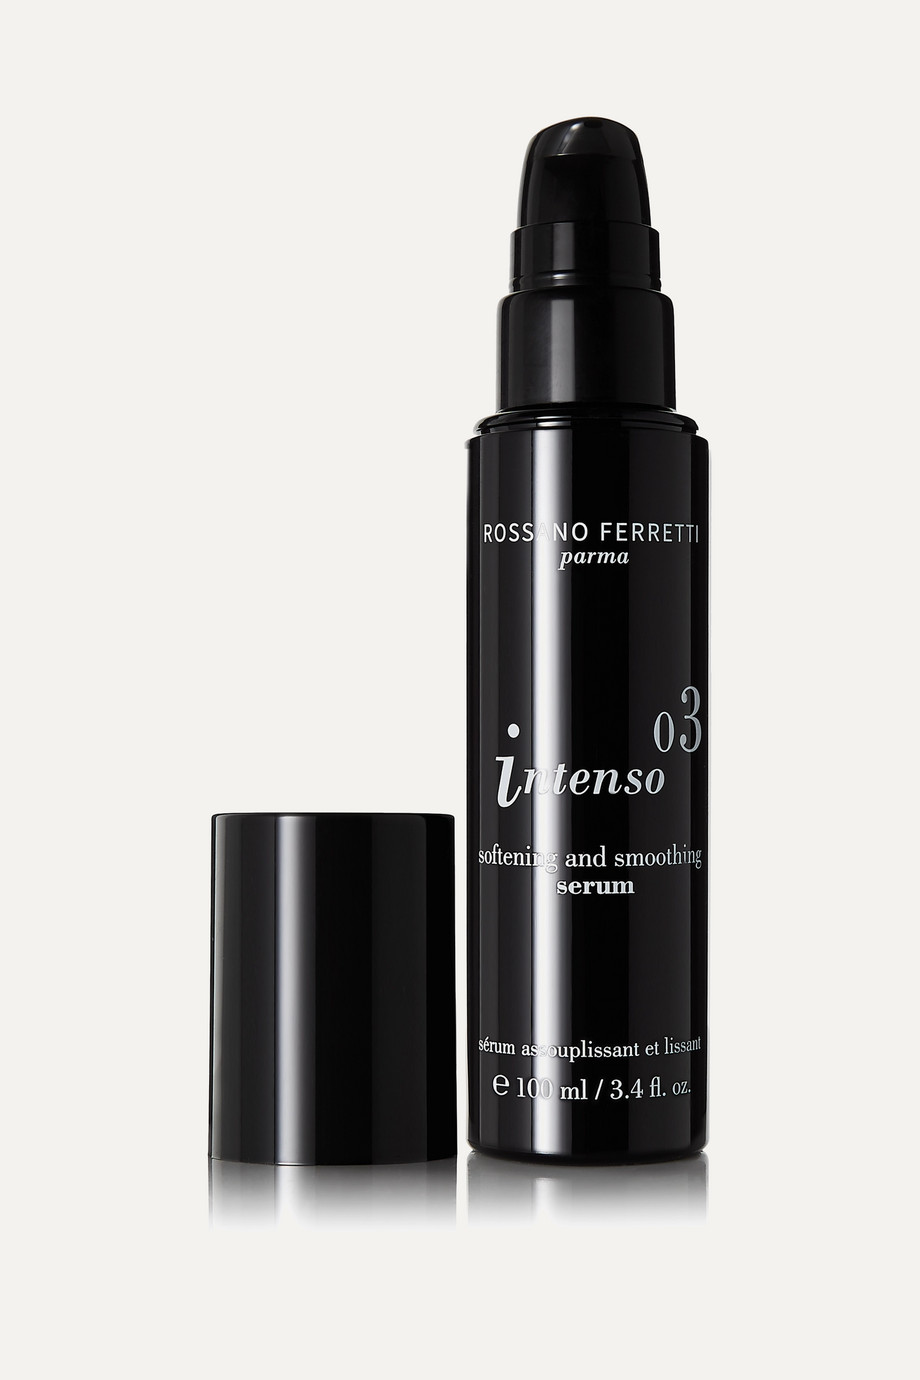 ROSSANO FERRETTI PARMA Intenso Softening and Smoothing Serum, 100ml